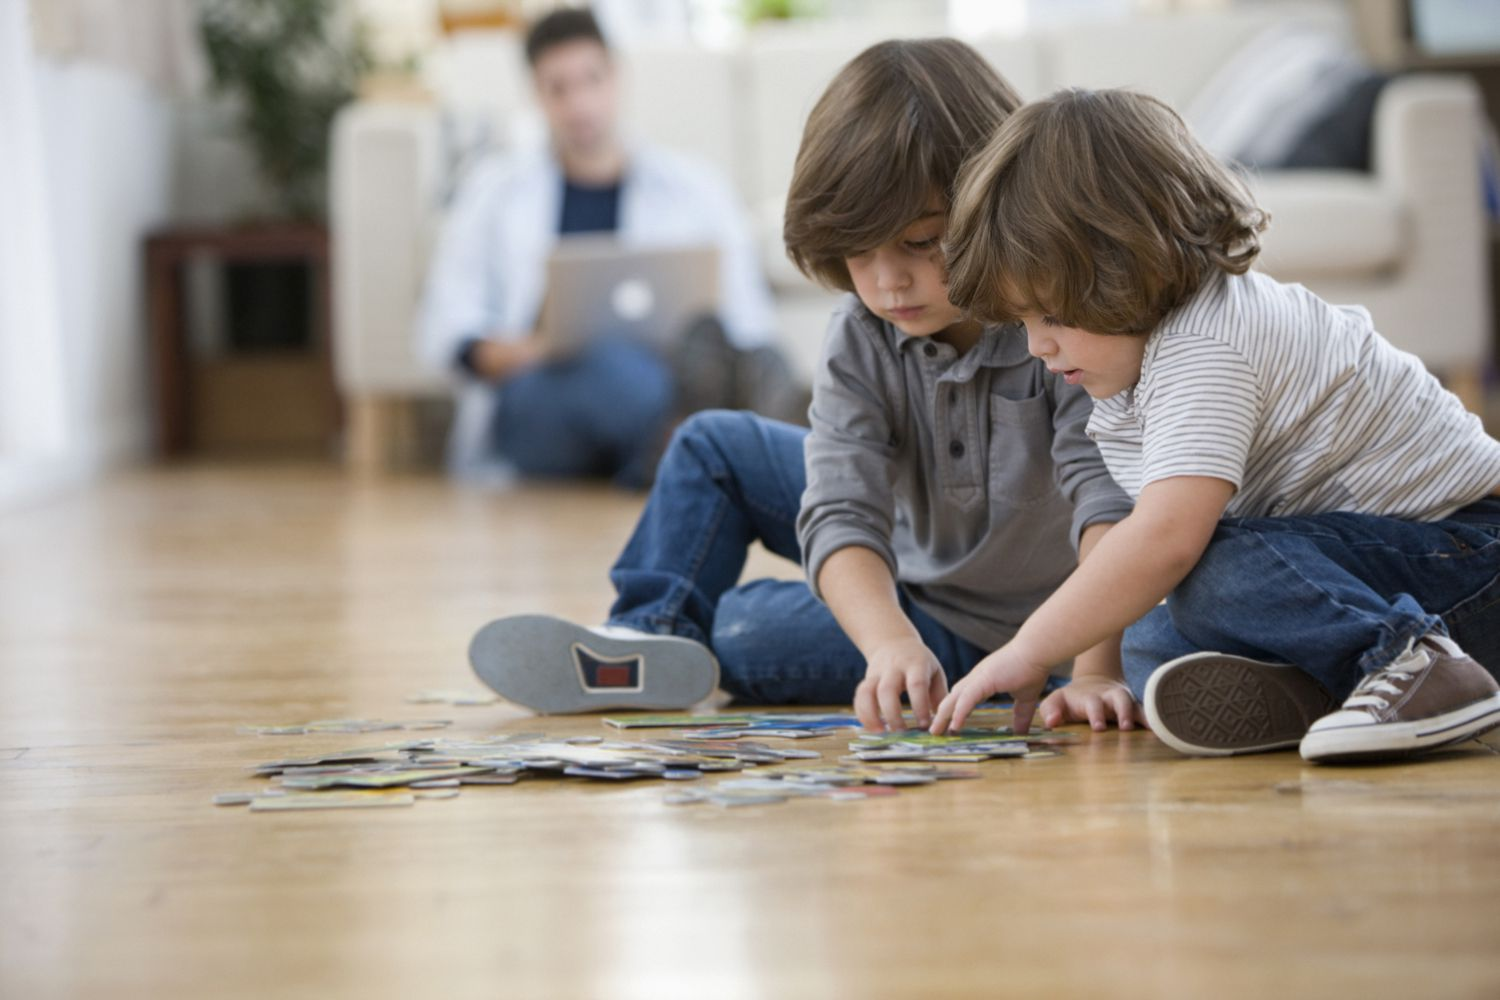 Benefits Of Structured Play For Kids